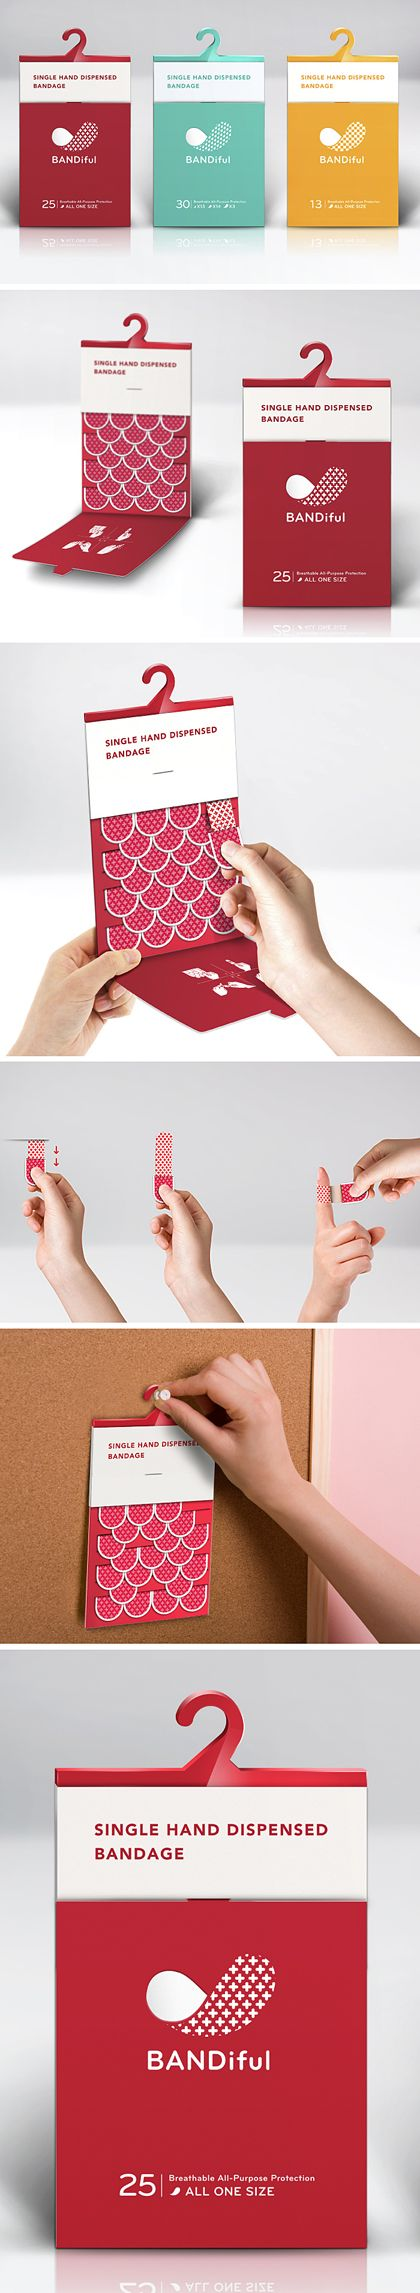 The Dieline: Package Design Awards 2013 - Best of Show | Designers: Vivi Feng & Yu-Ping Chuang